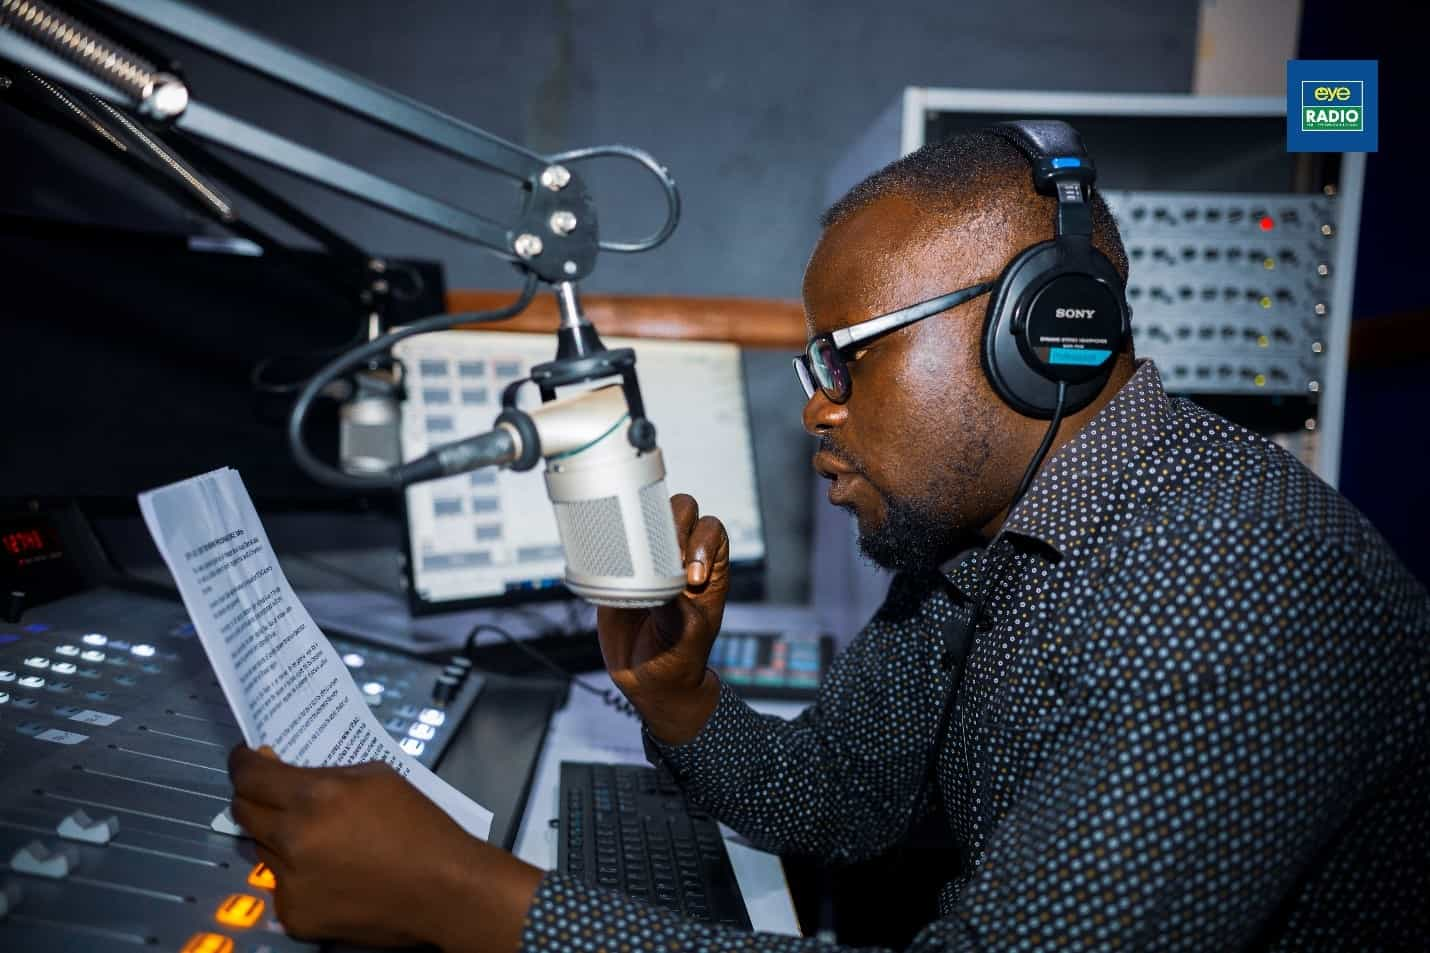 A man sits in front of a mic in a radio studio reading from a piece of paper